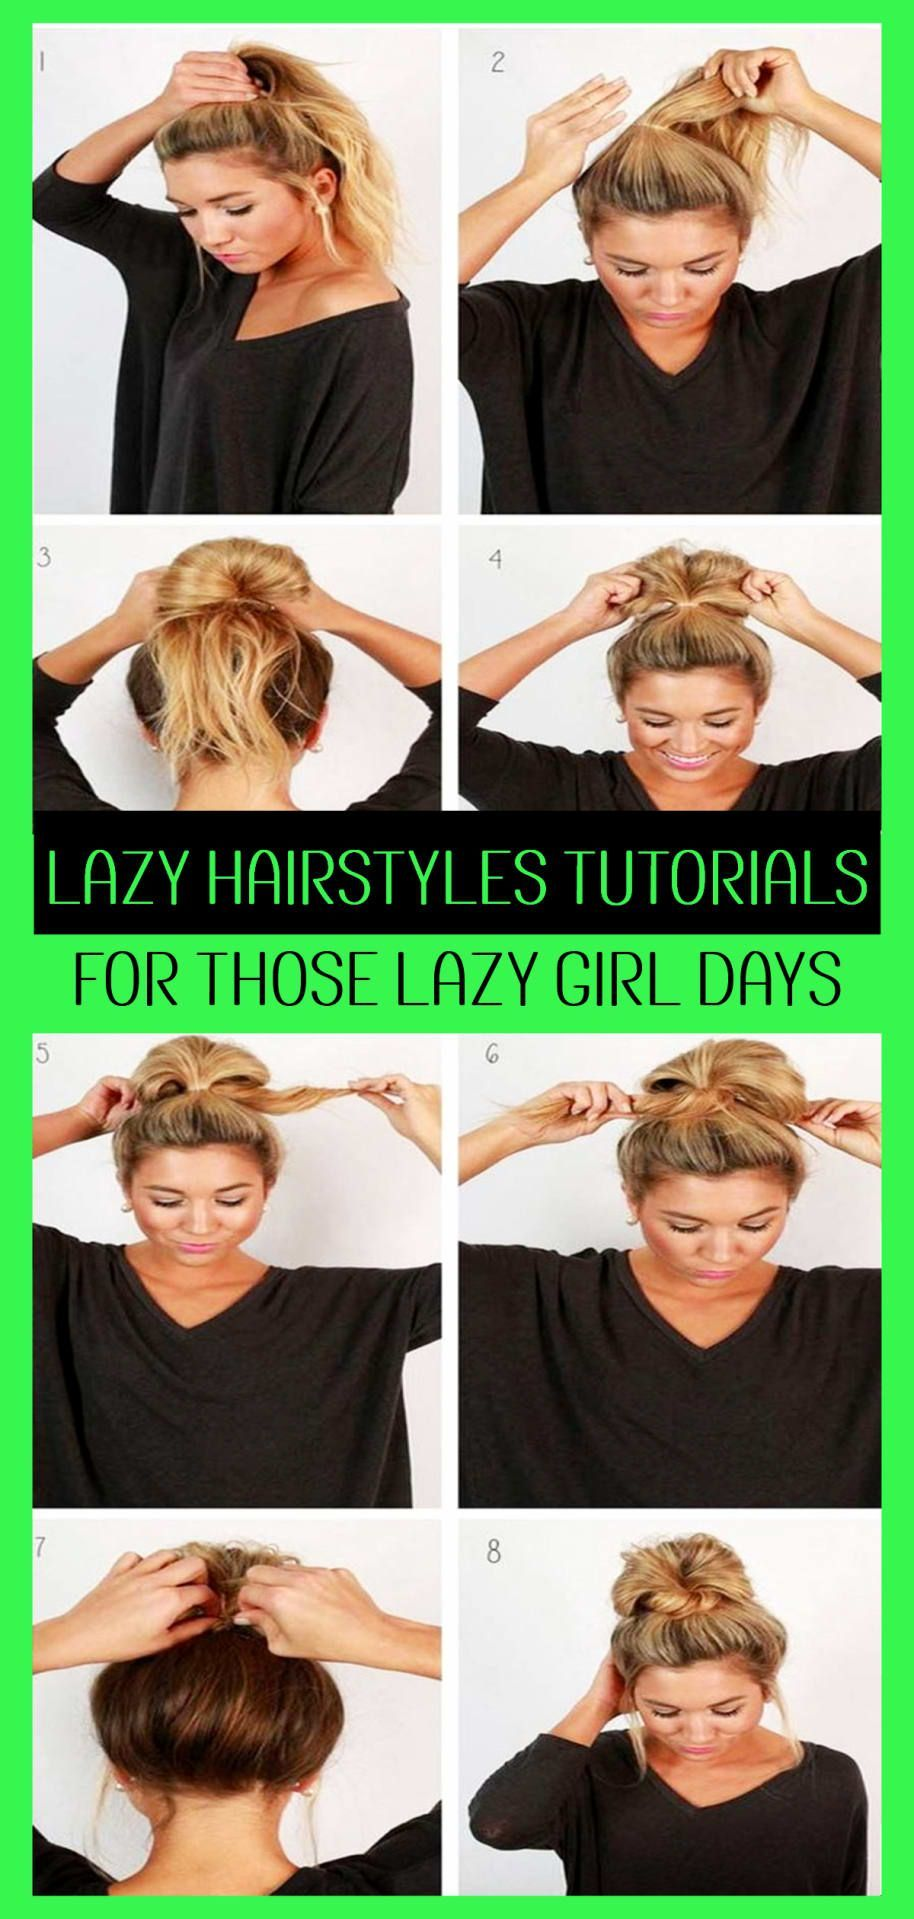 Lazy Hairstyles Quick Messy Lazy Hairstyles For School Or For Work Easy Messy Bun Hairstyles In 2020 Lazy Hairstyles Easy Everyday Hairstyles Lazy Girl Hairstyles